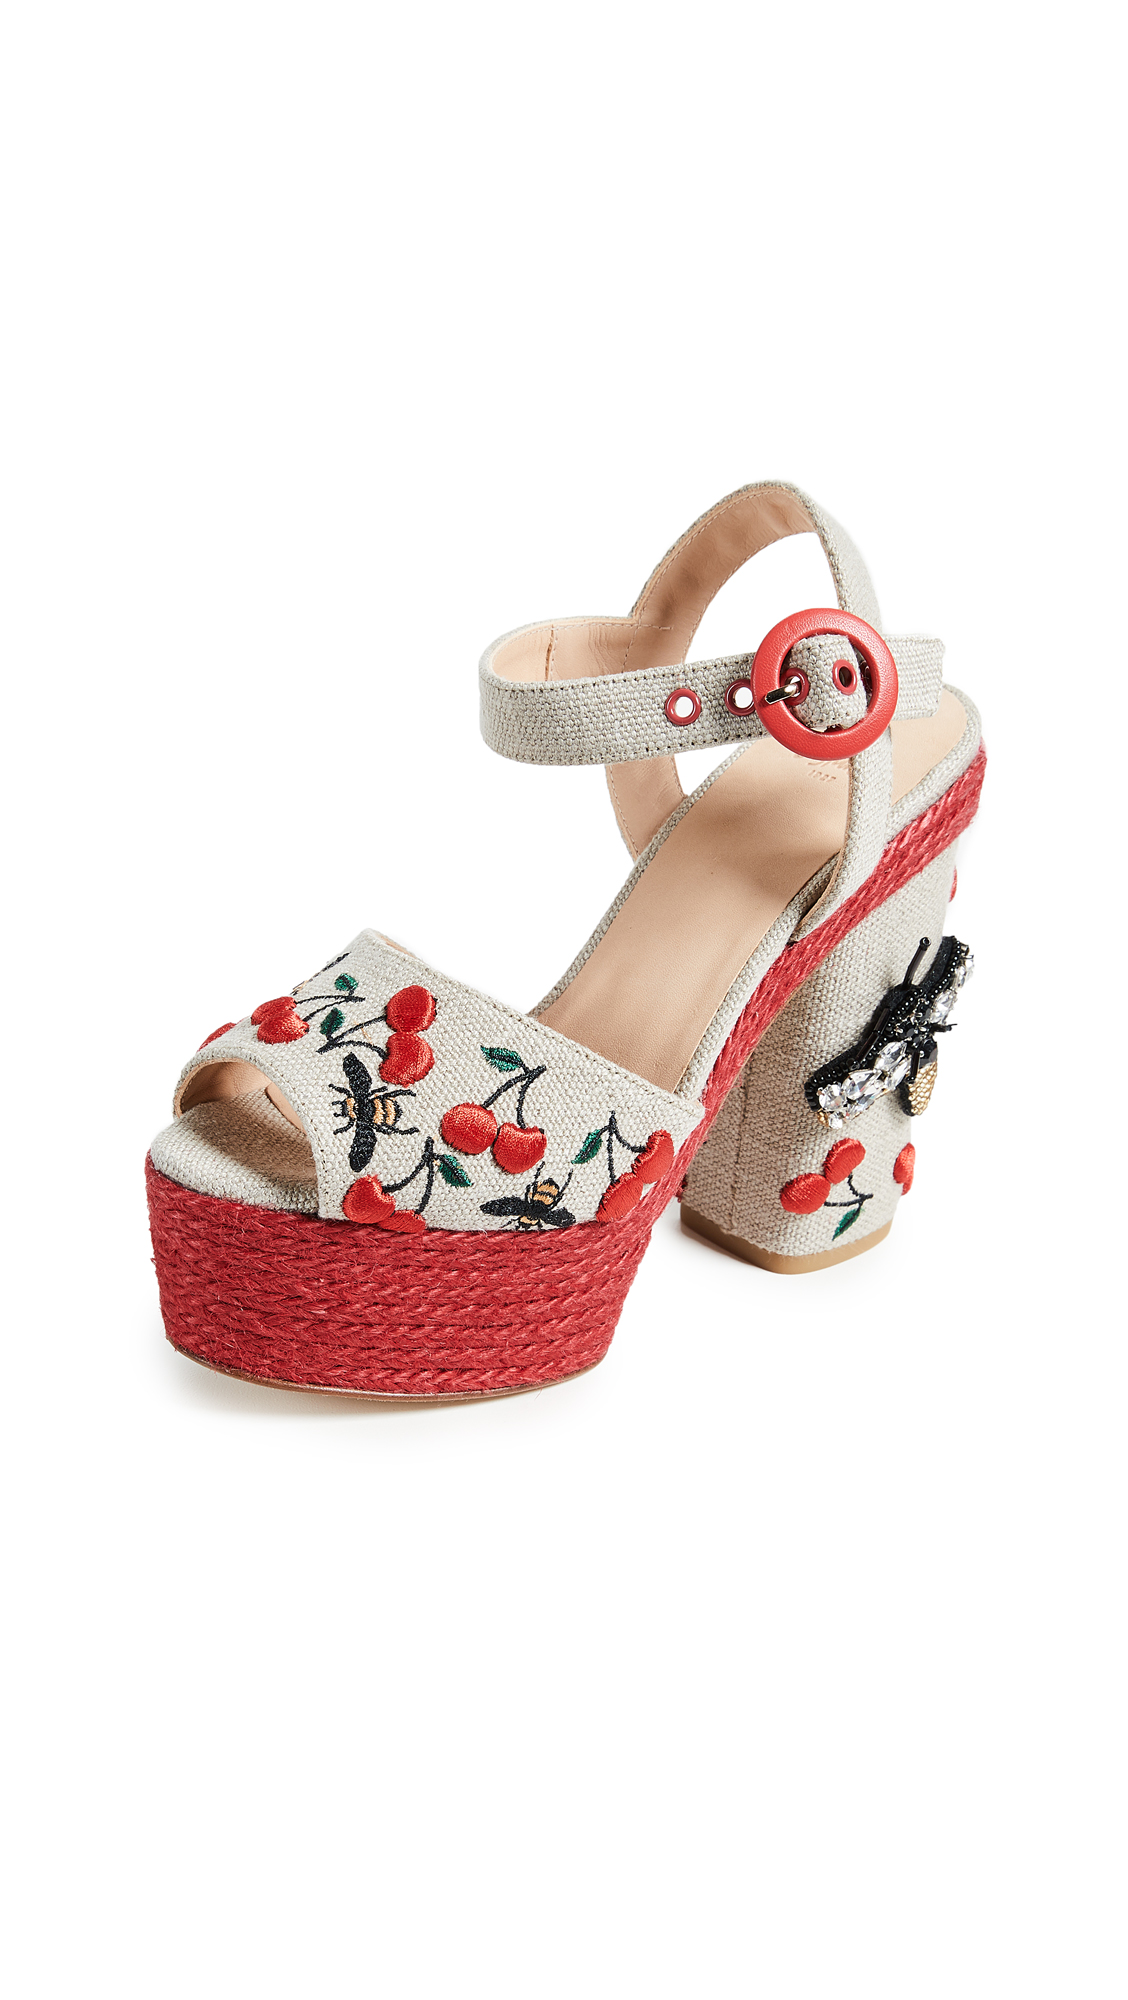 Castaner Aloe Platform Cherry Sandals - Natural